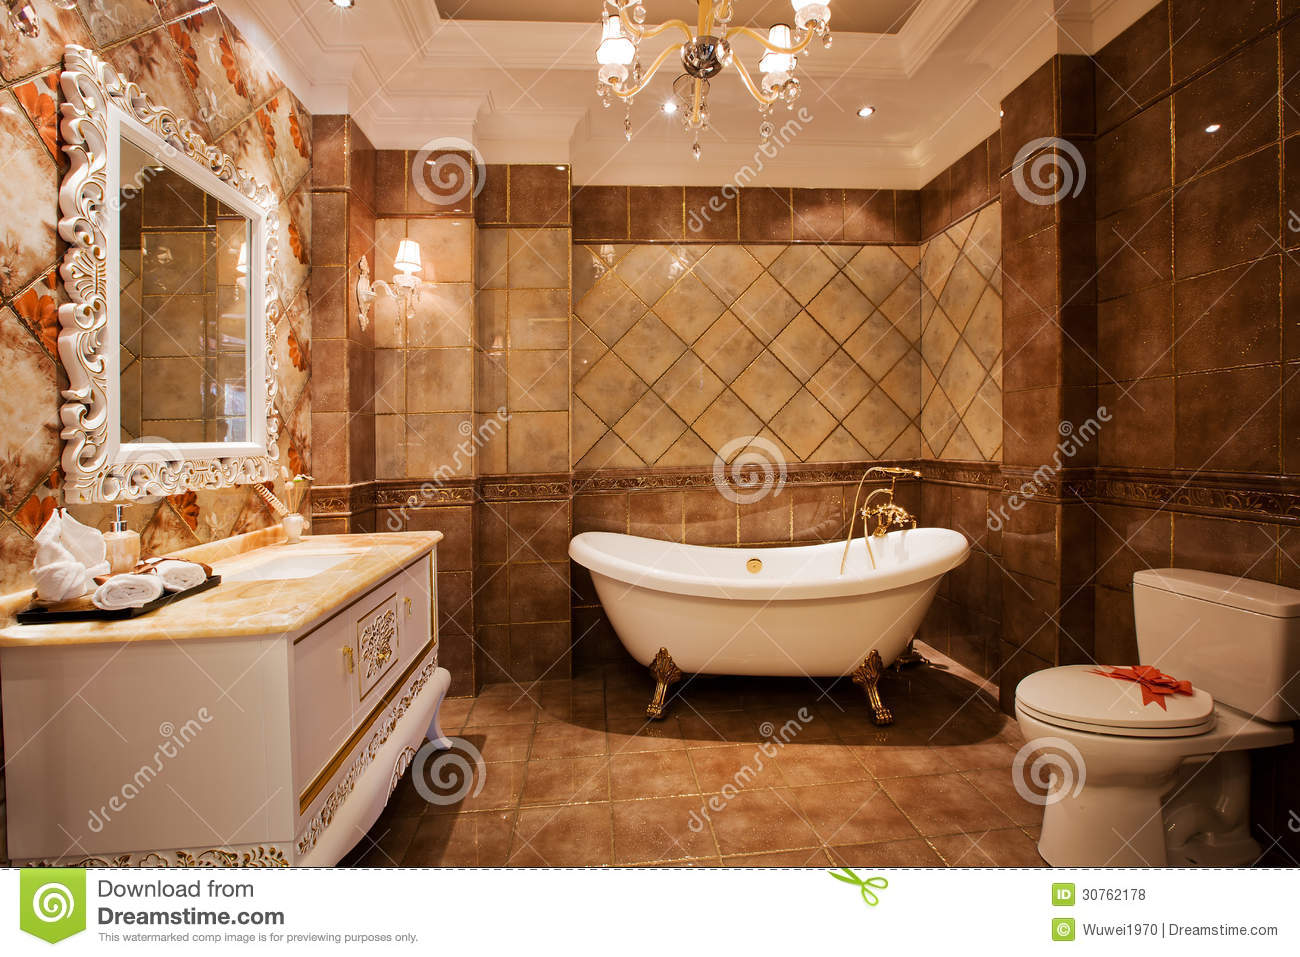 The Bathroom Royalty Free Stock Photos Image 30762178